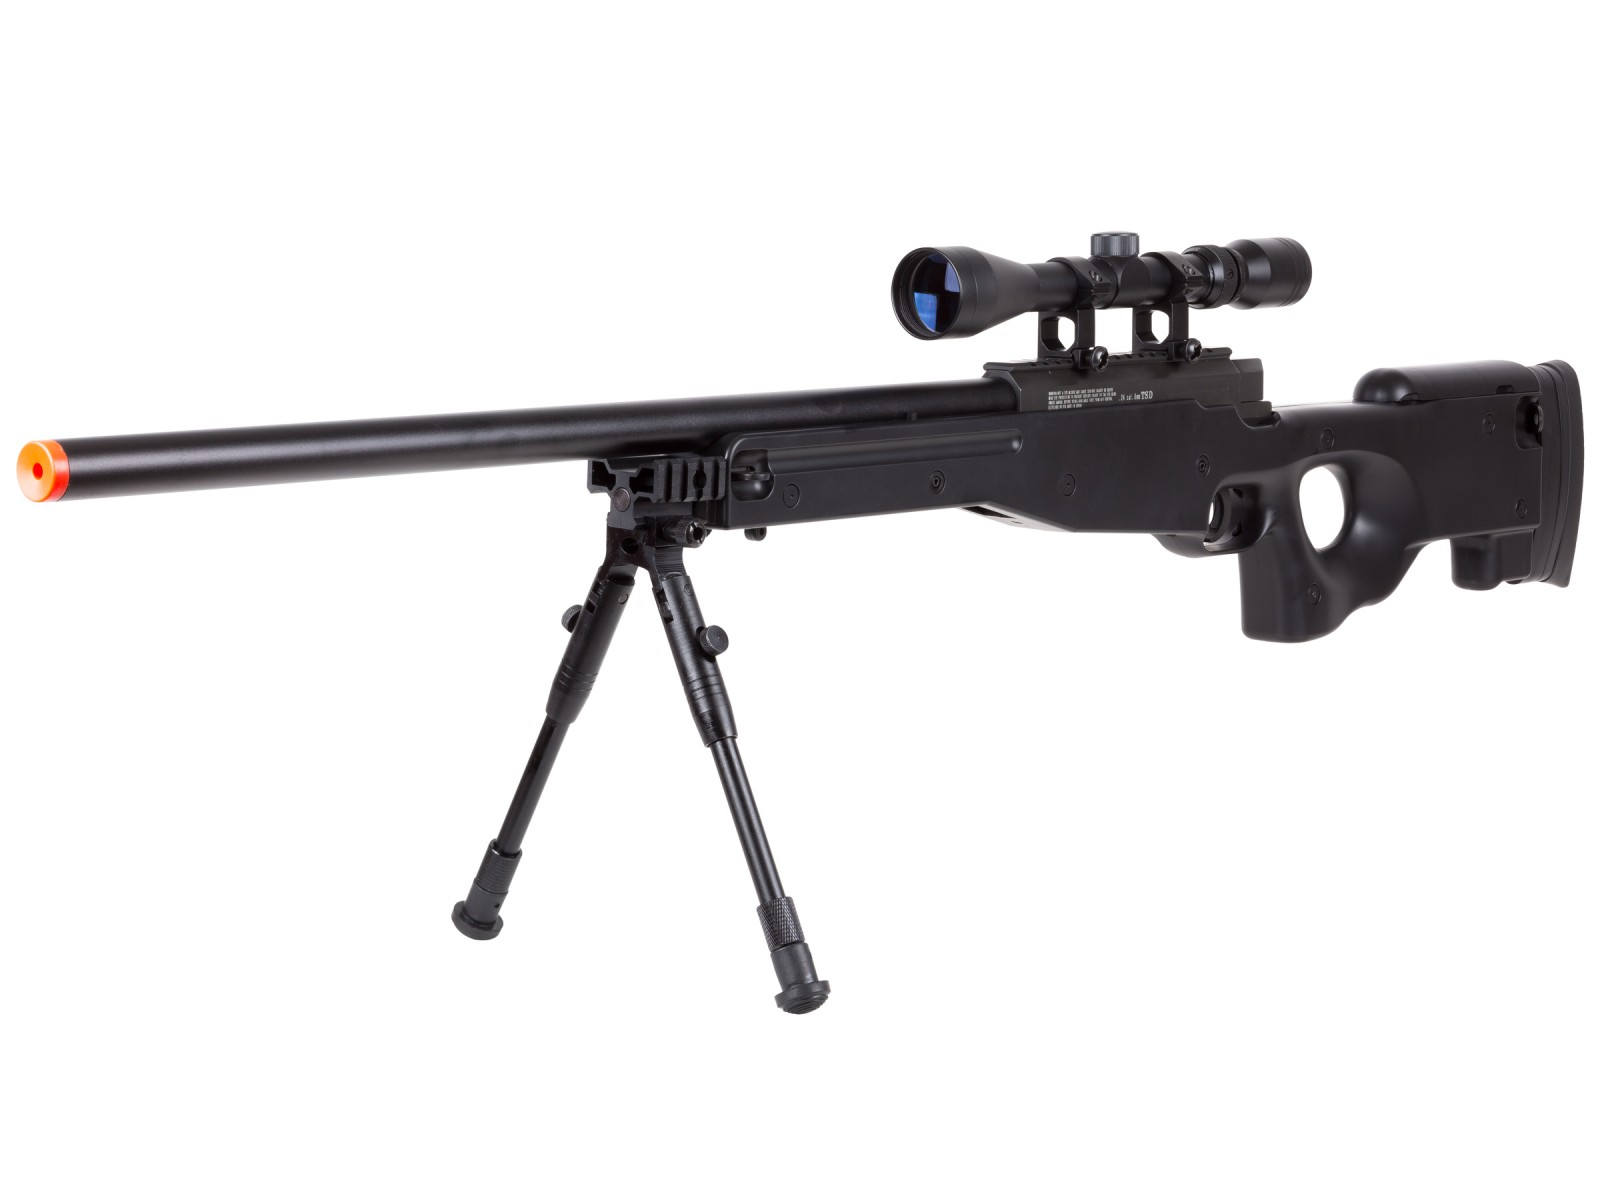 TSD_Tactical_Series_Type_96_Sniper_Black_Rifle_6mm